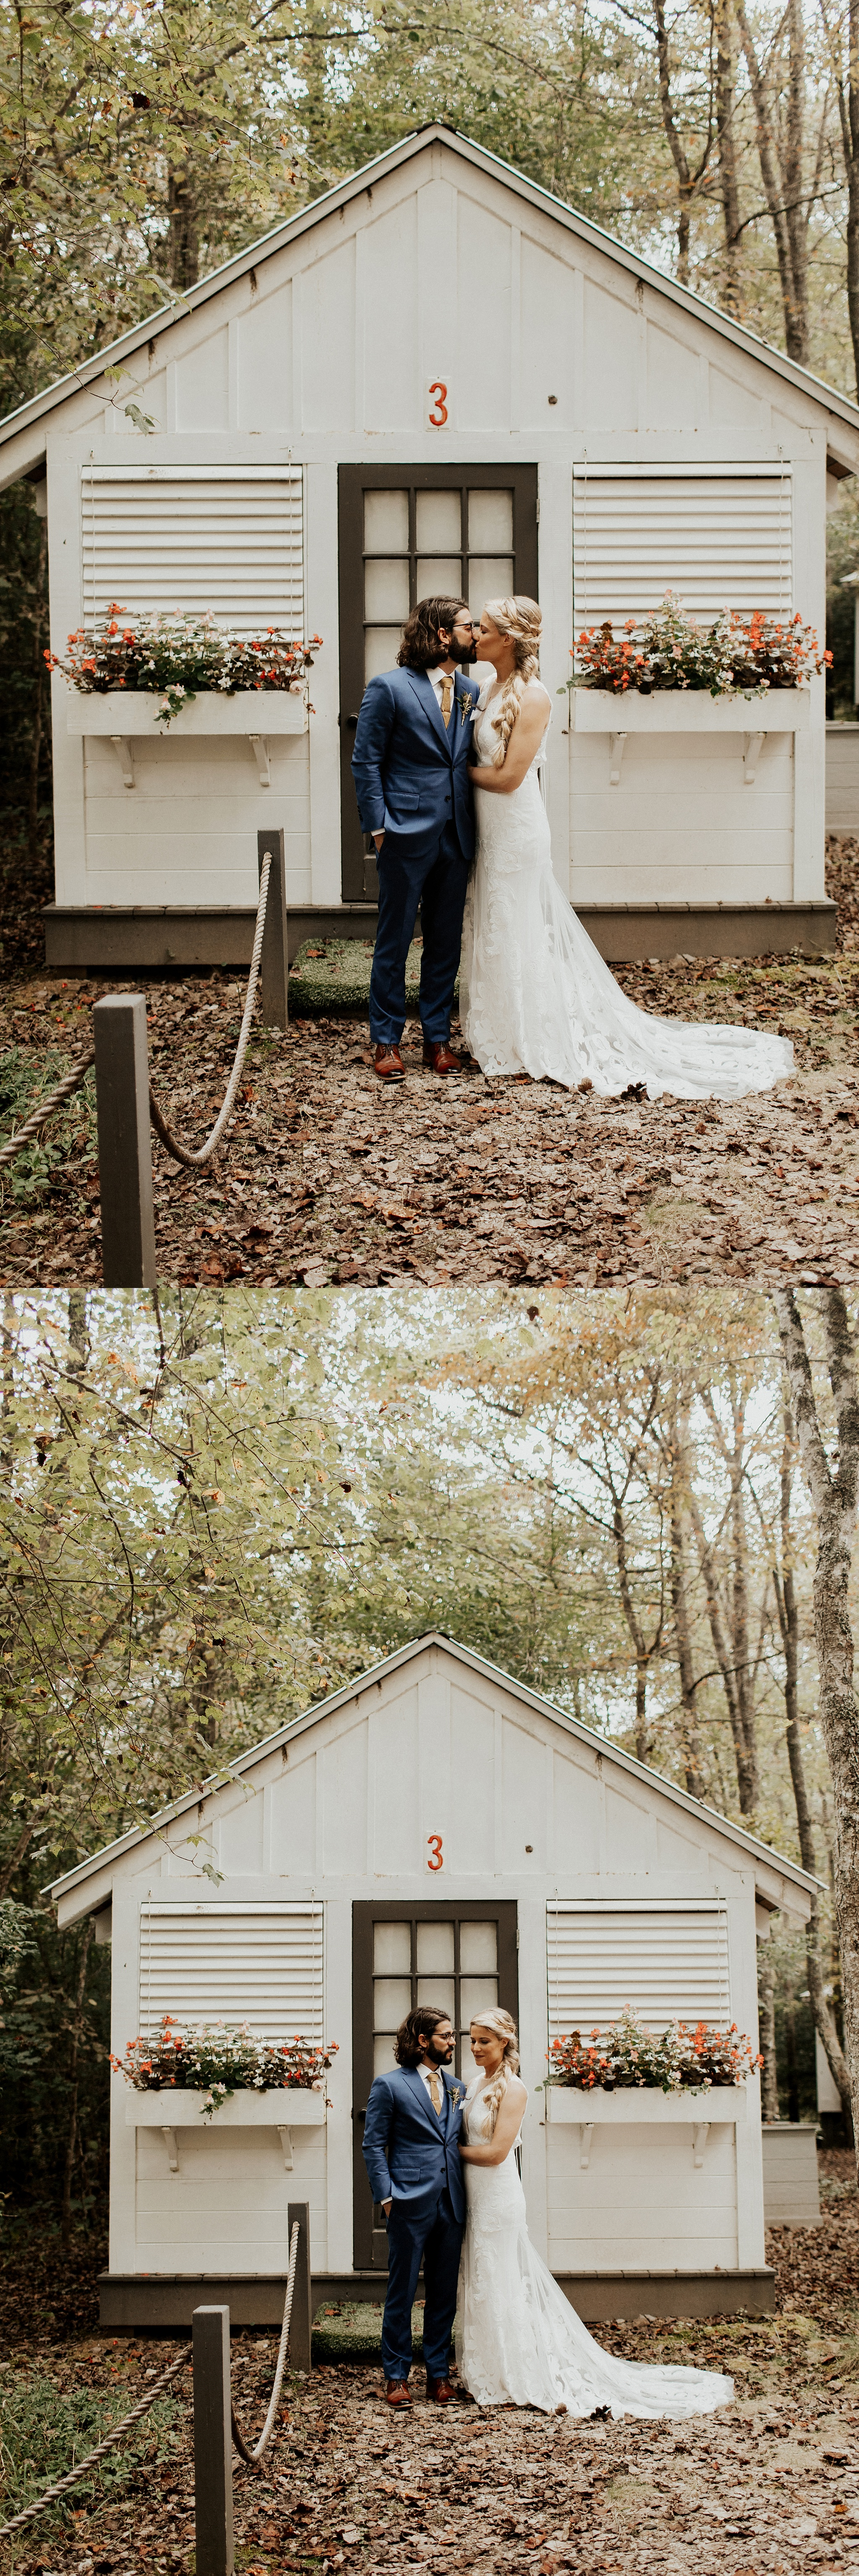 sugarboo_farms_intimate_mountain_wedding025.JPG